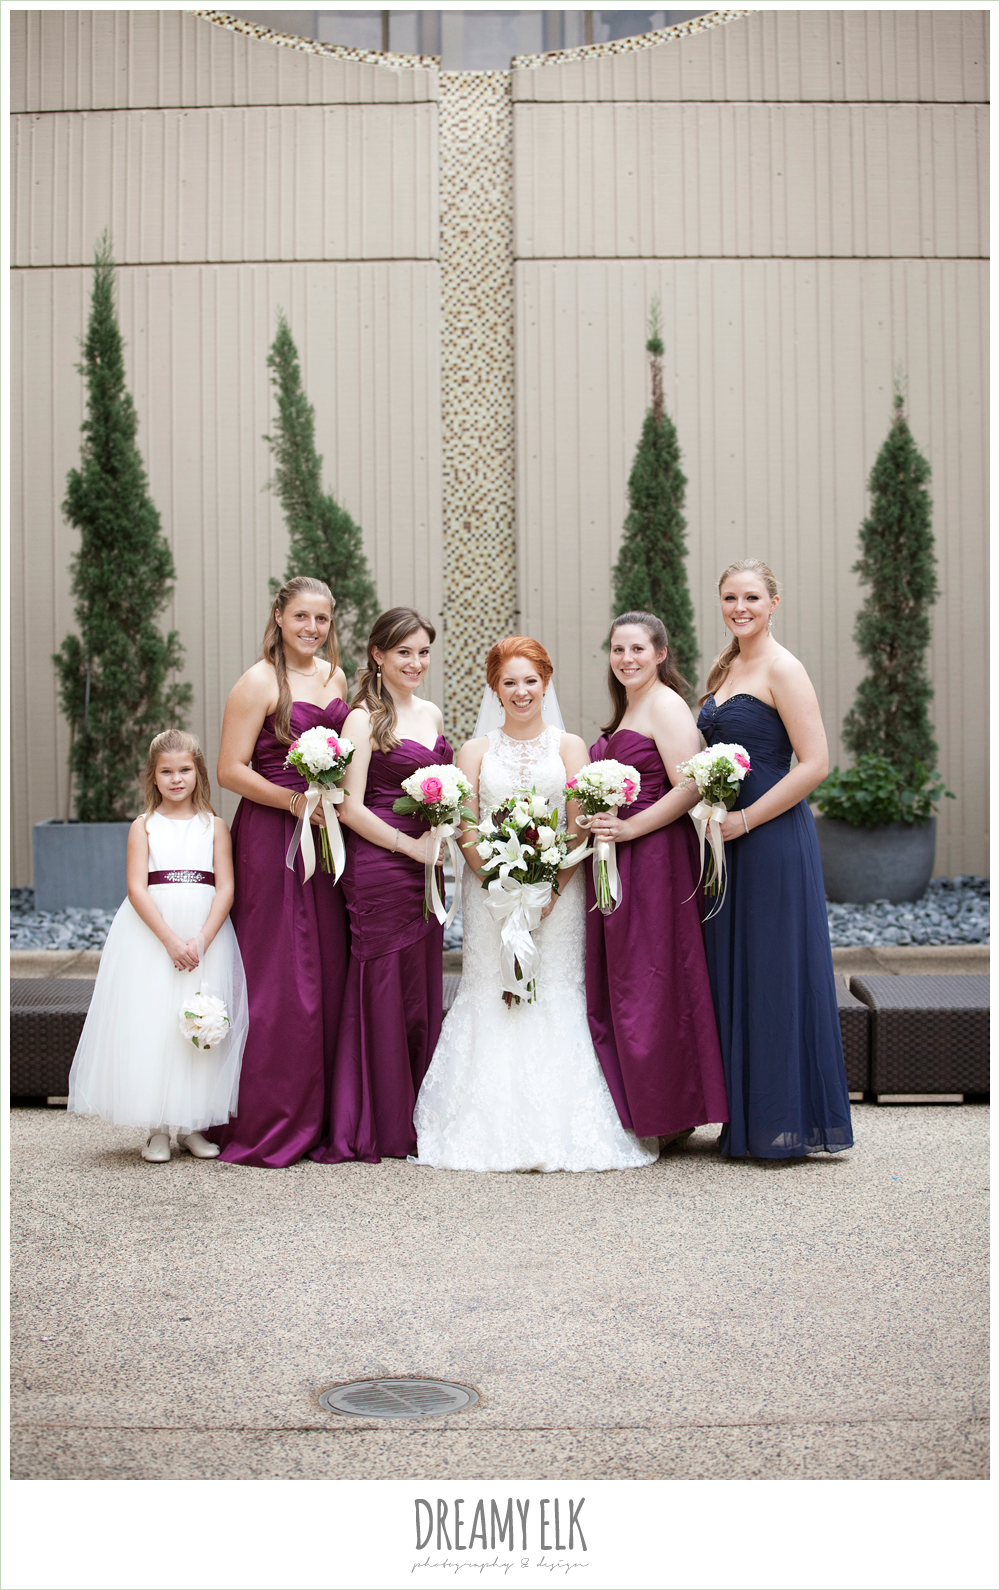 hilton hotel, university of houston, bride and bridesmaids, sangria strapless bridesmaids dresses, high-necked lace wedding dress, dreamy elk photography and design